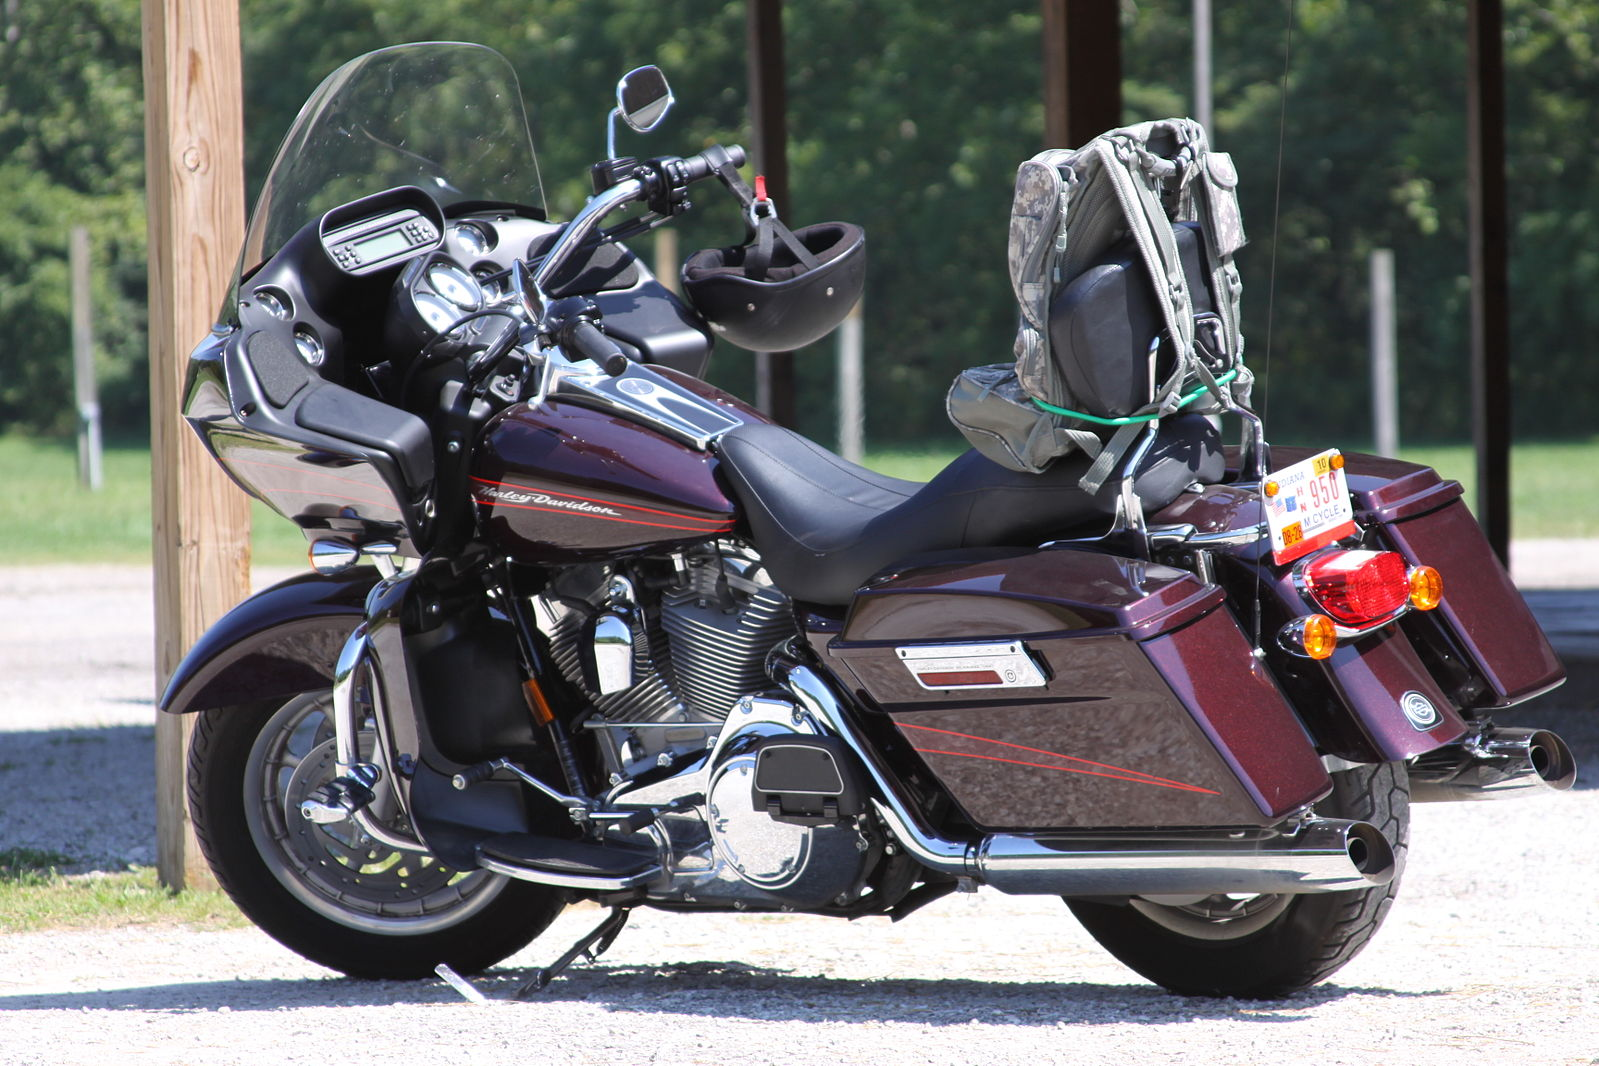 Difference Between Road Glide and Street Glide